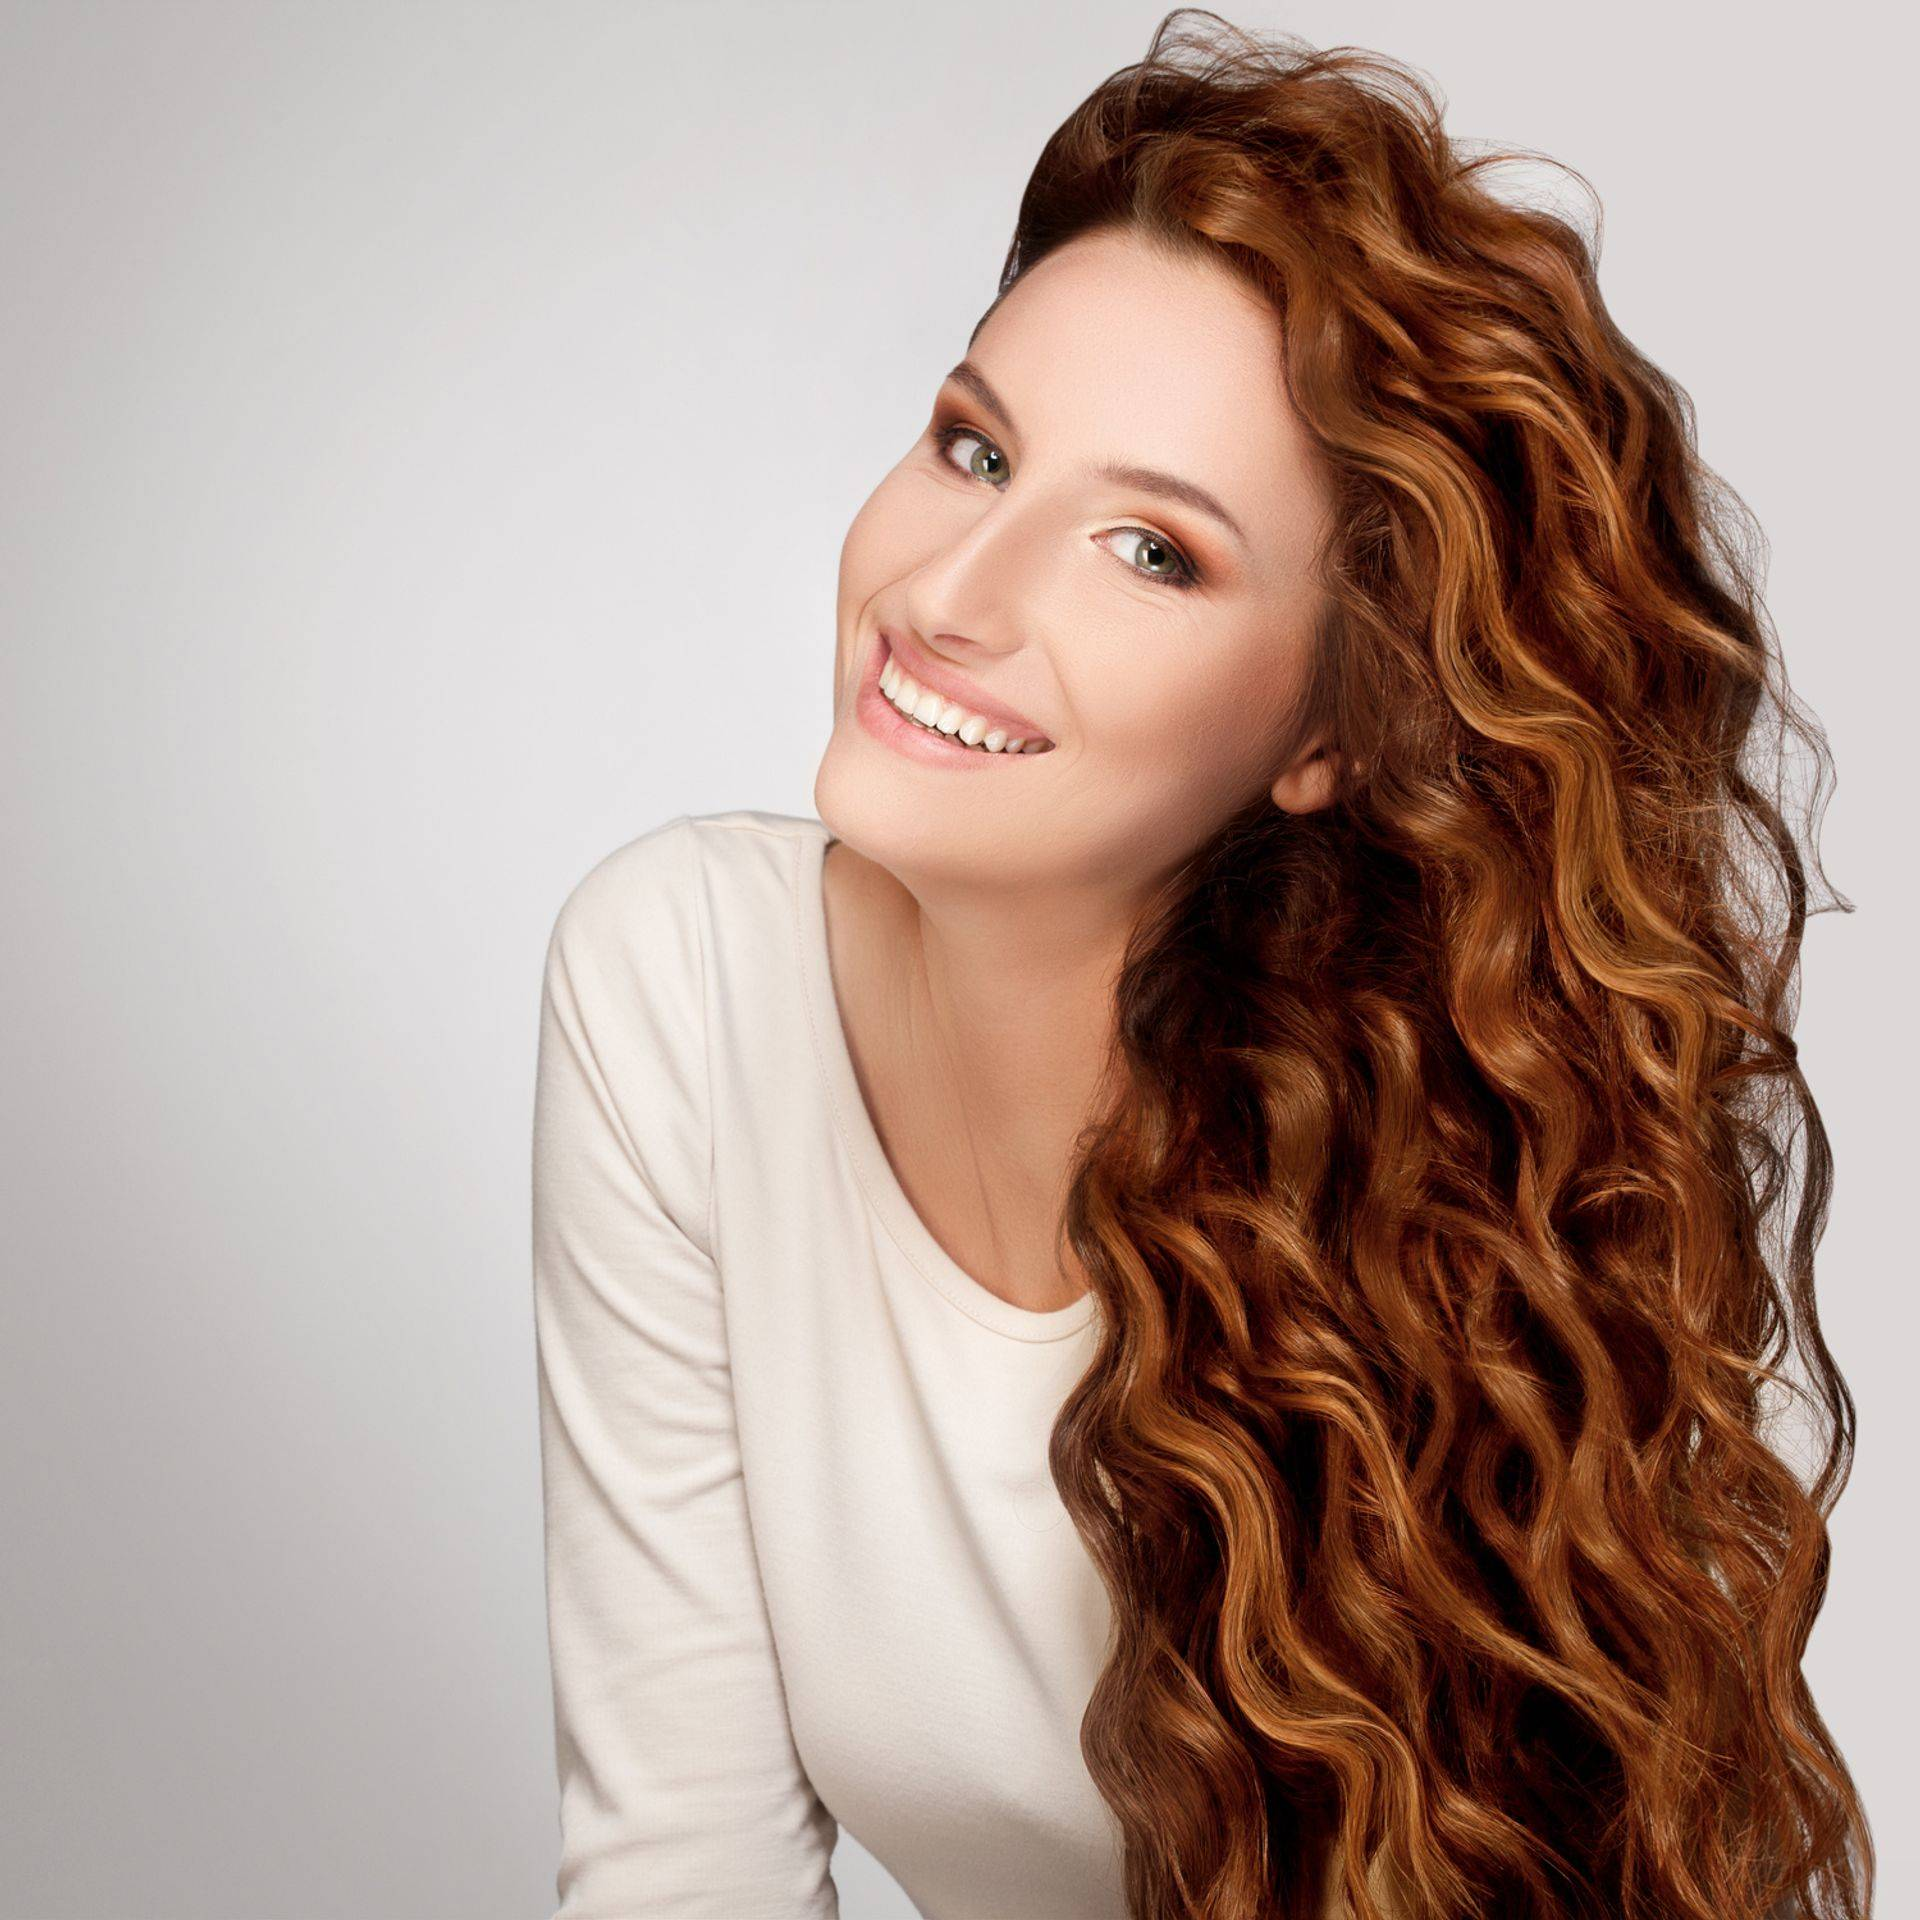 Hair color Services, curly hair, repair, hair enhancements